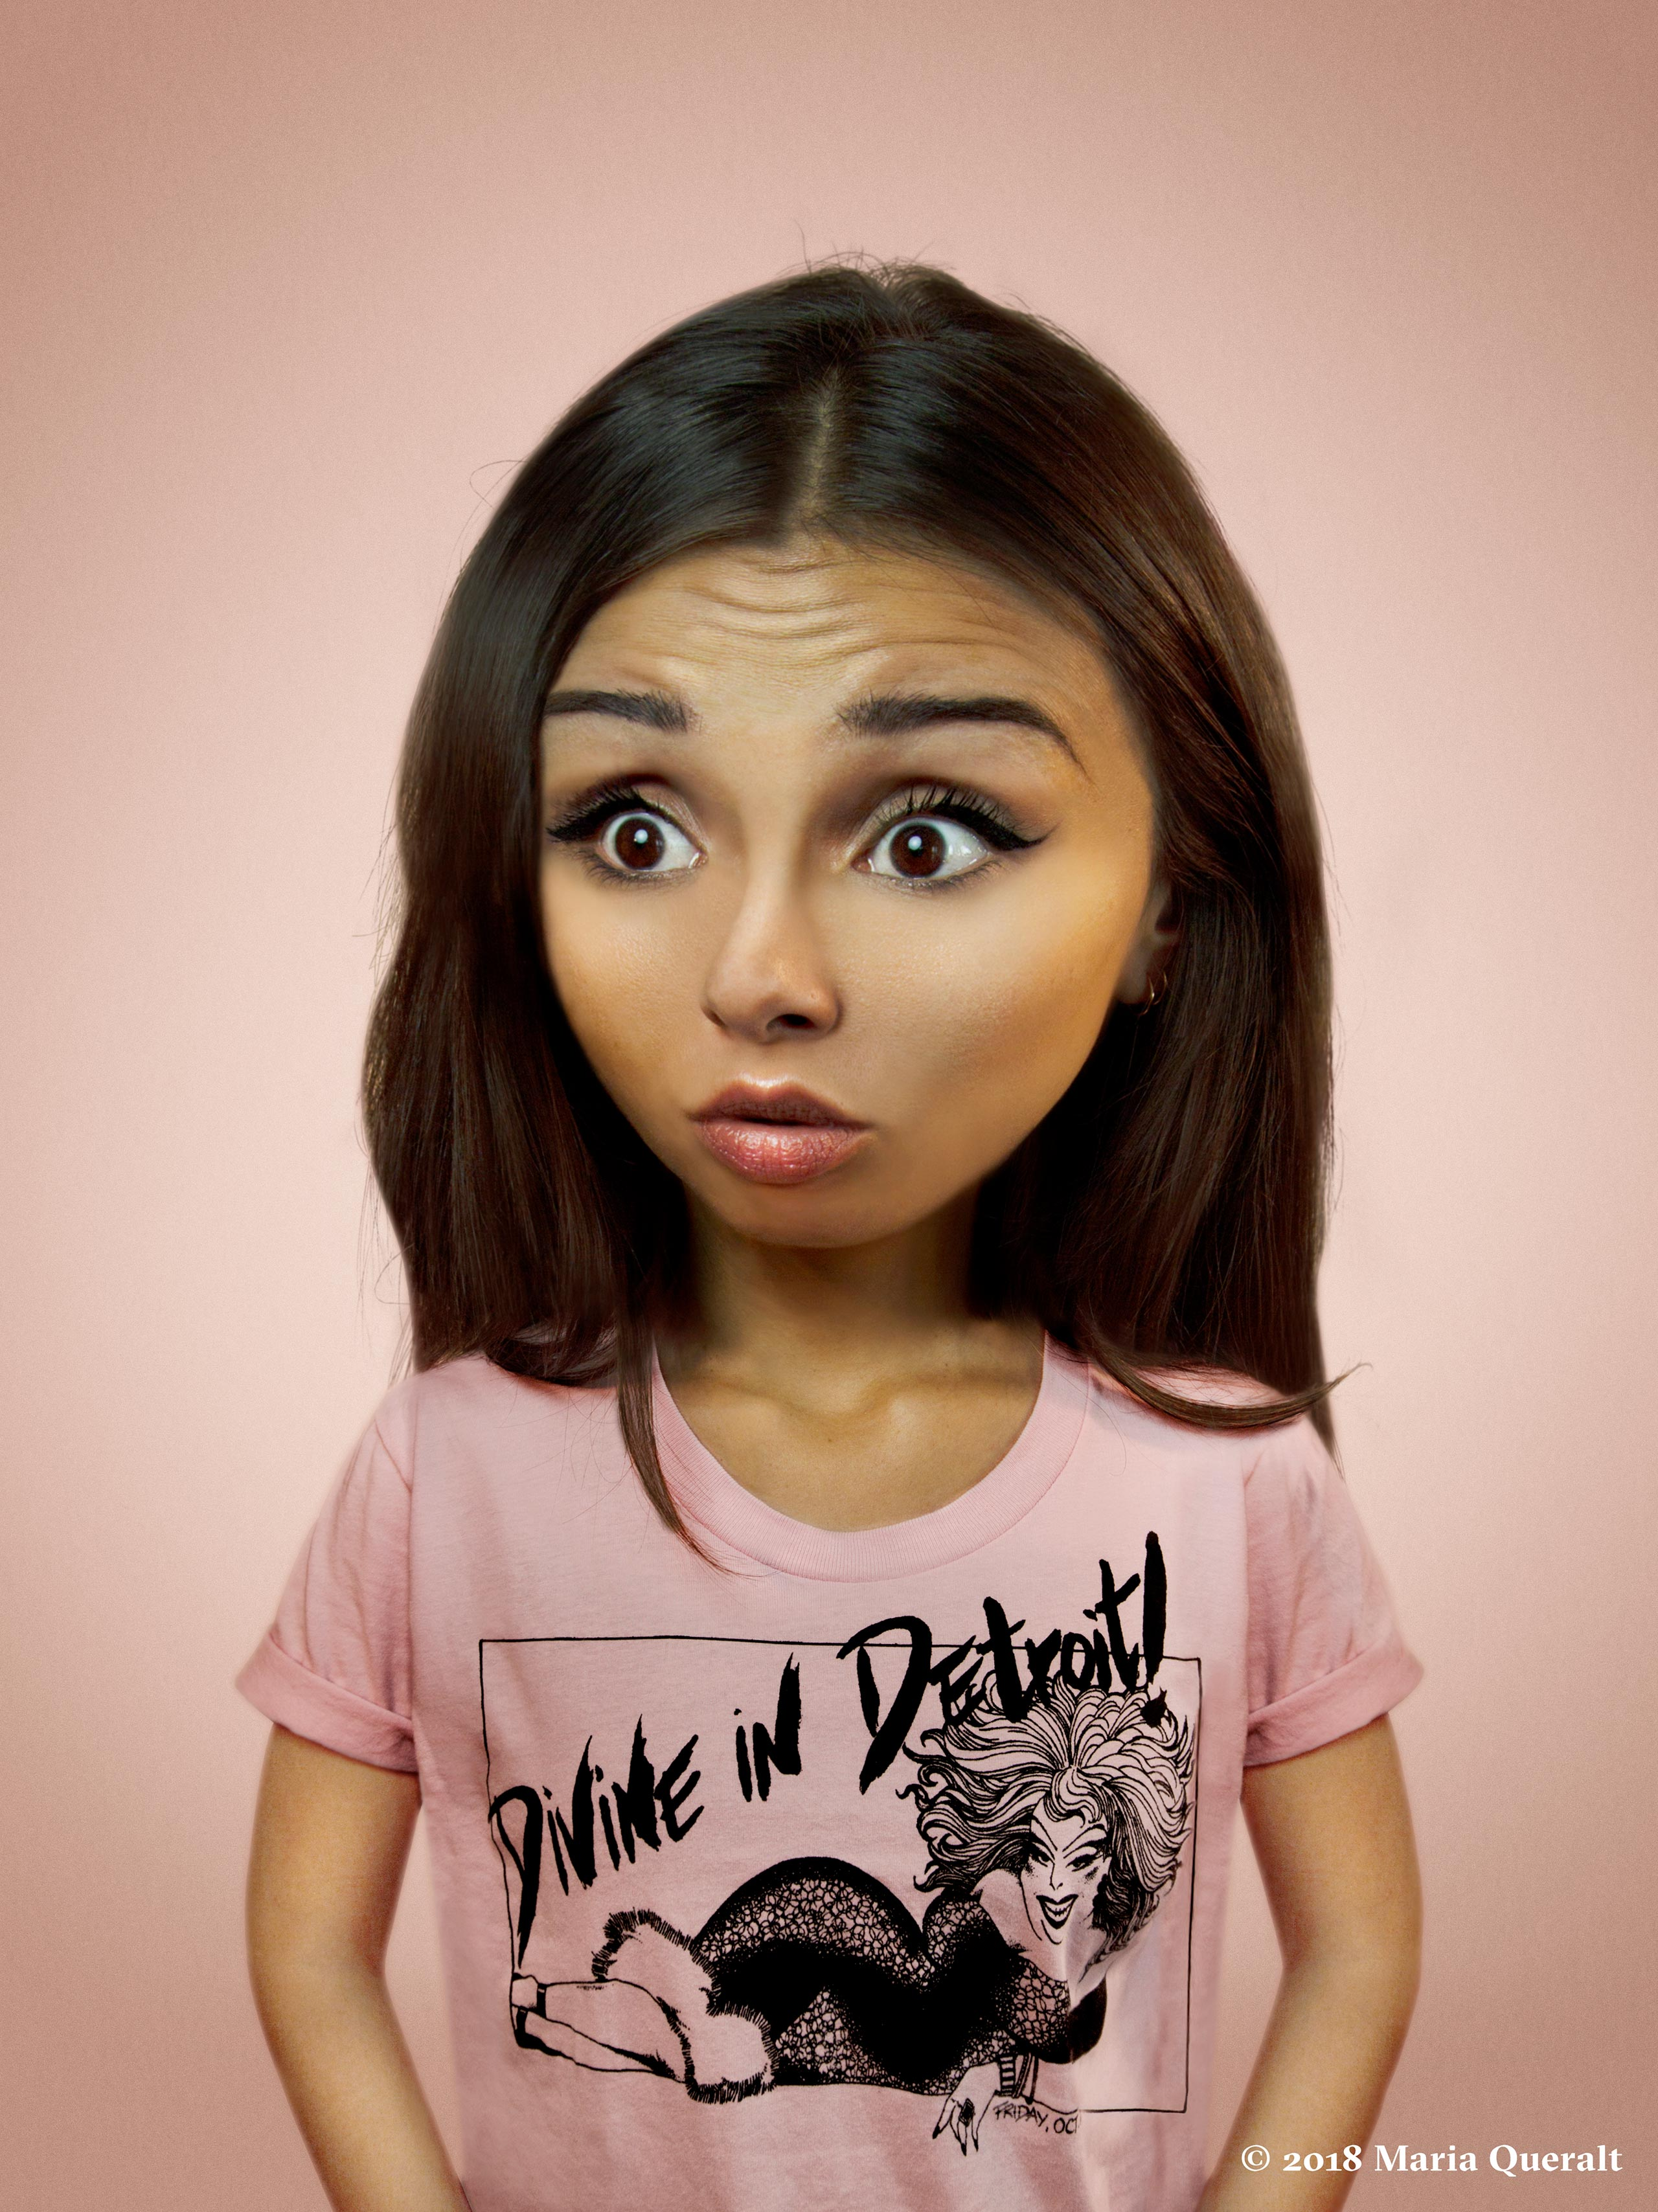 Self portrait of photographer and artist Maria Queralt with facial features retouched as a little girl with pink Divine in Detroit t-shirt on pink background. Photography and retouch by Maria Queralt. Paris, France